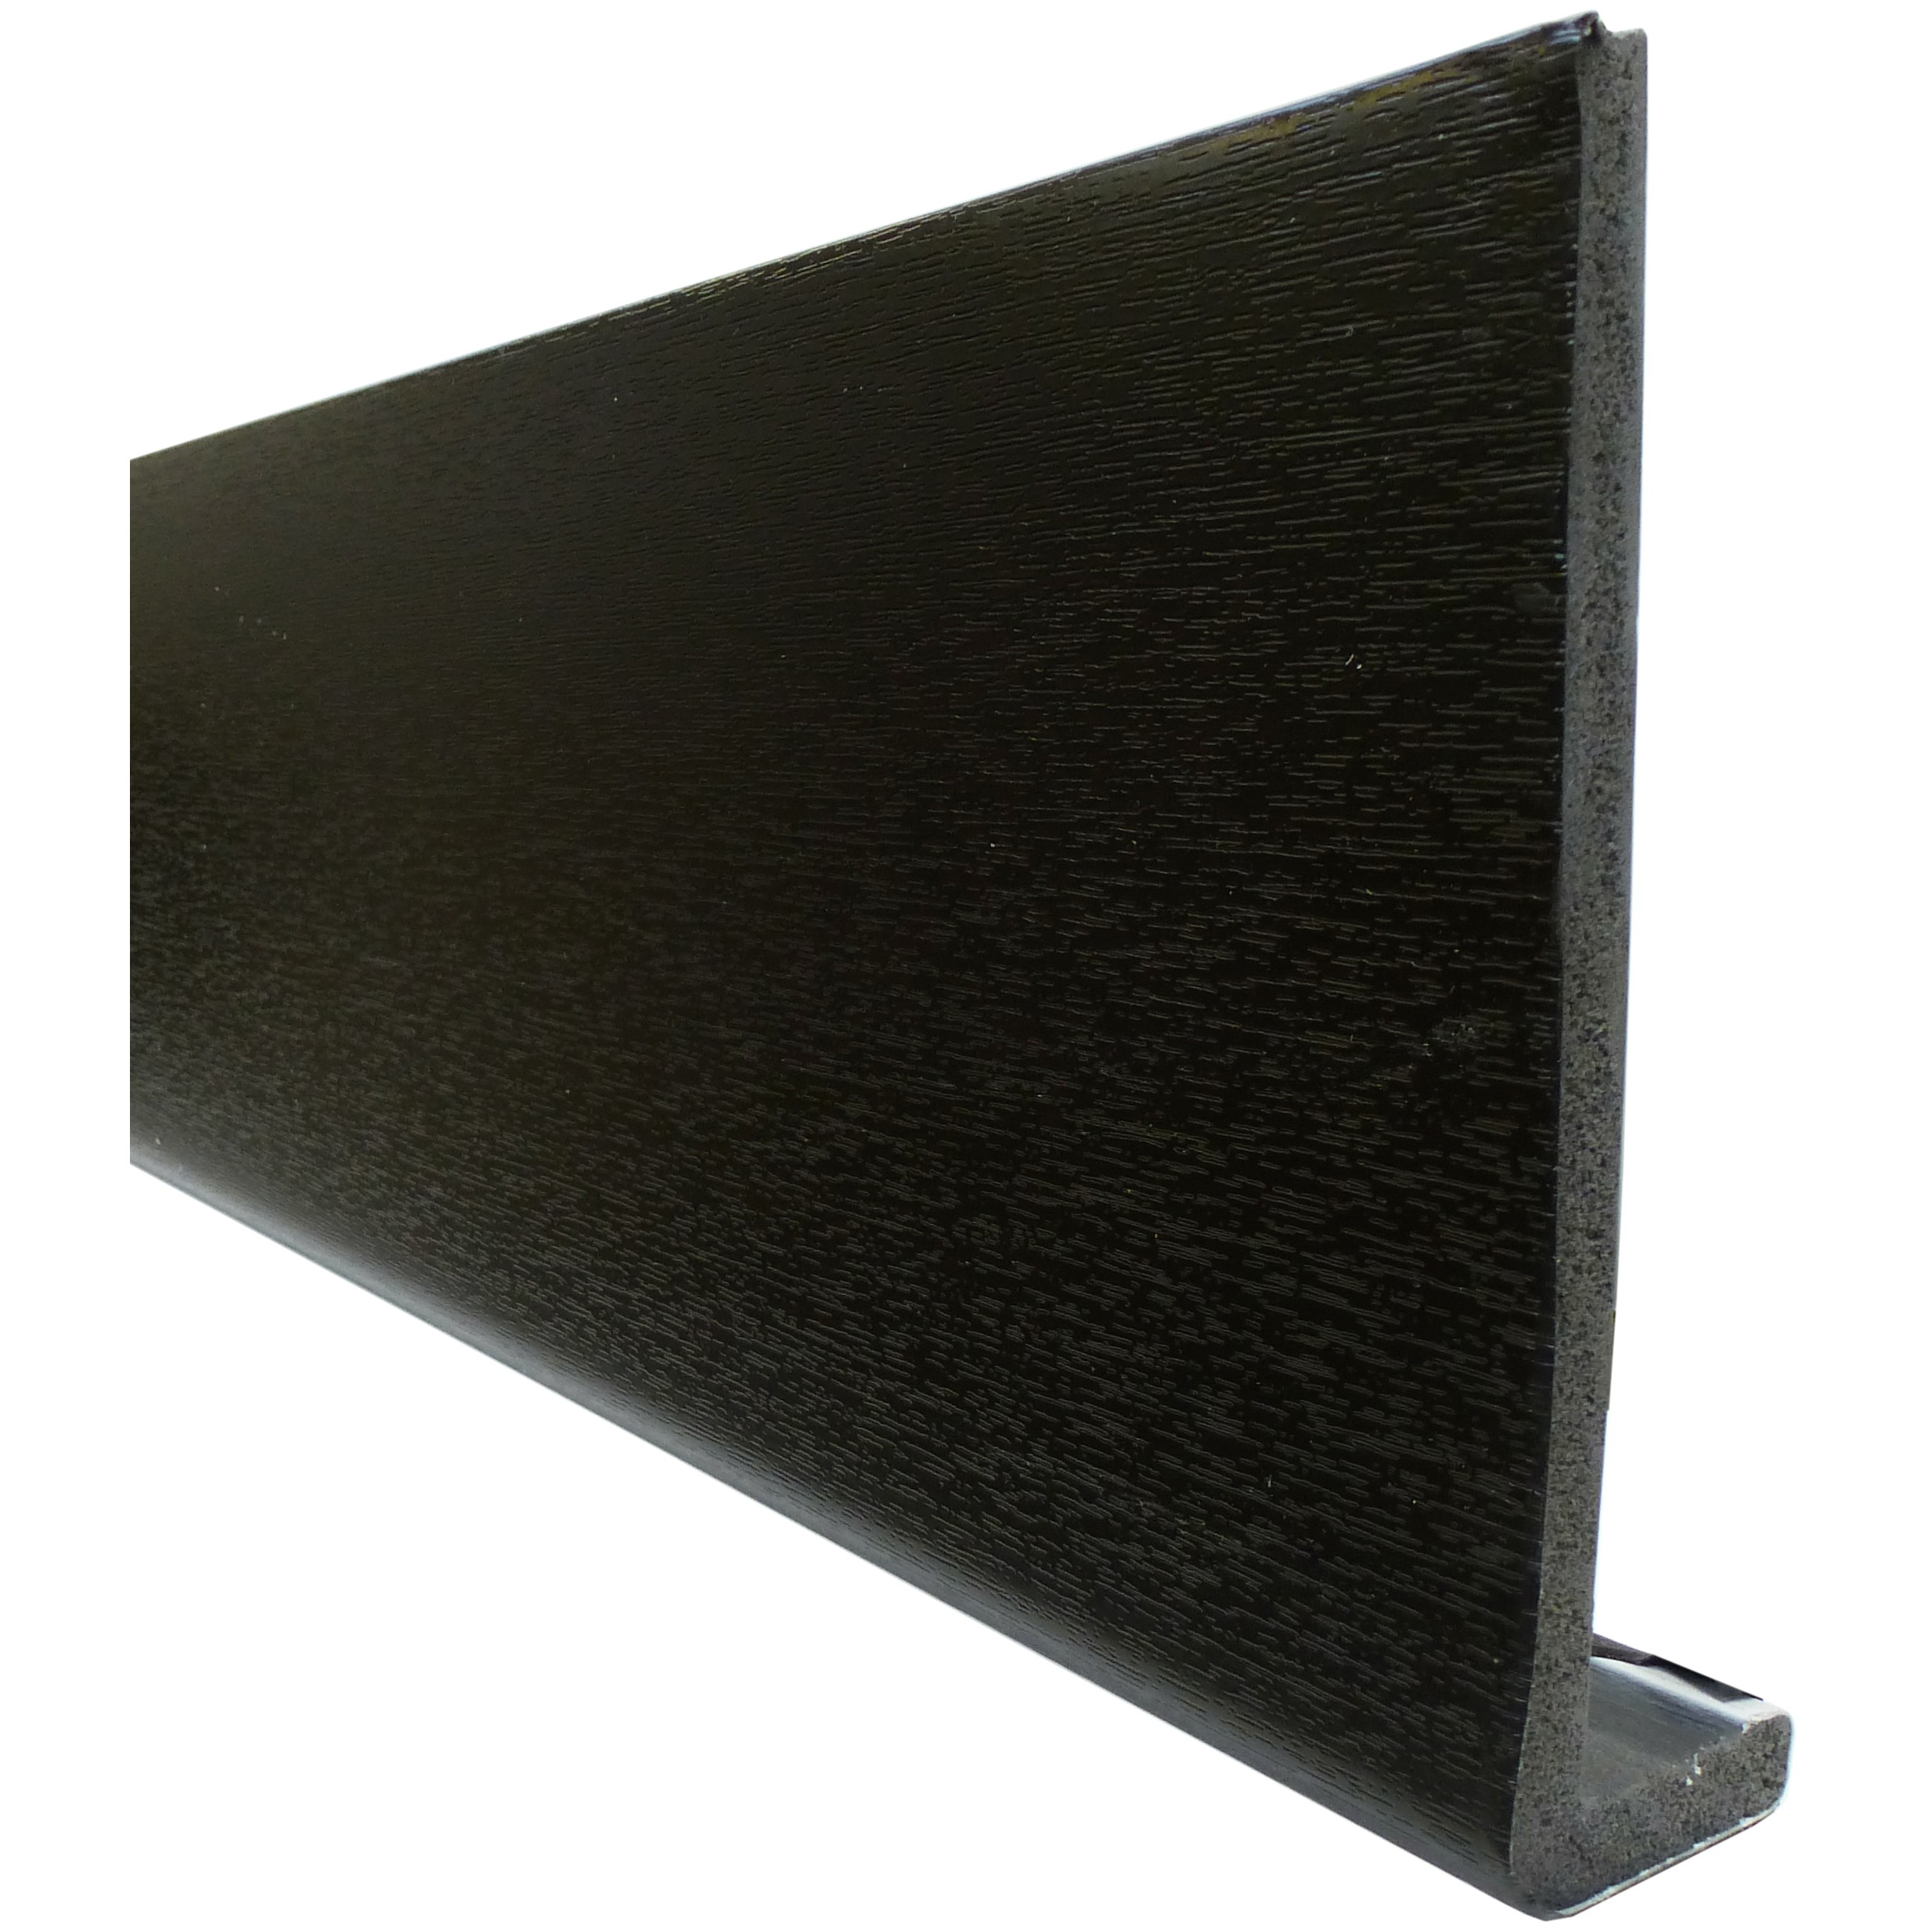 Freefoam Plain 10mm Fascia Board - Woodgrain Black Ash, 200mm, 5 metre